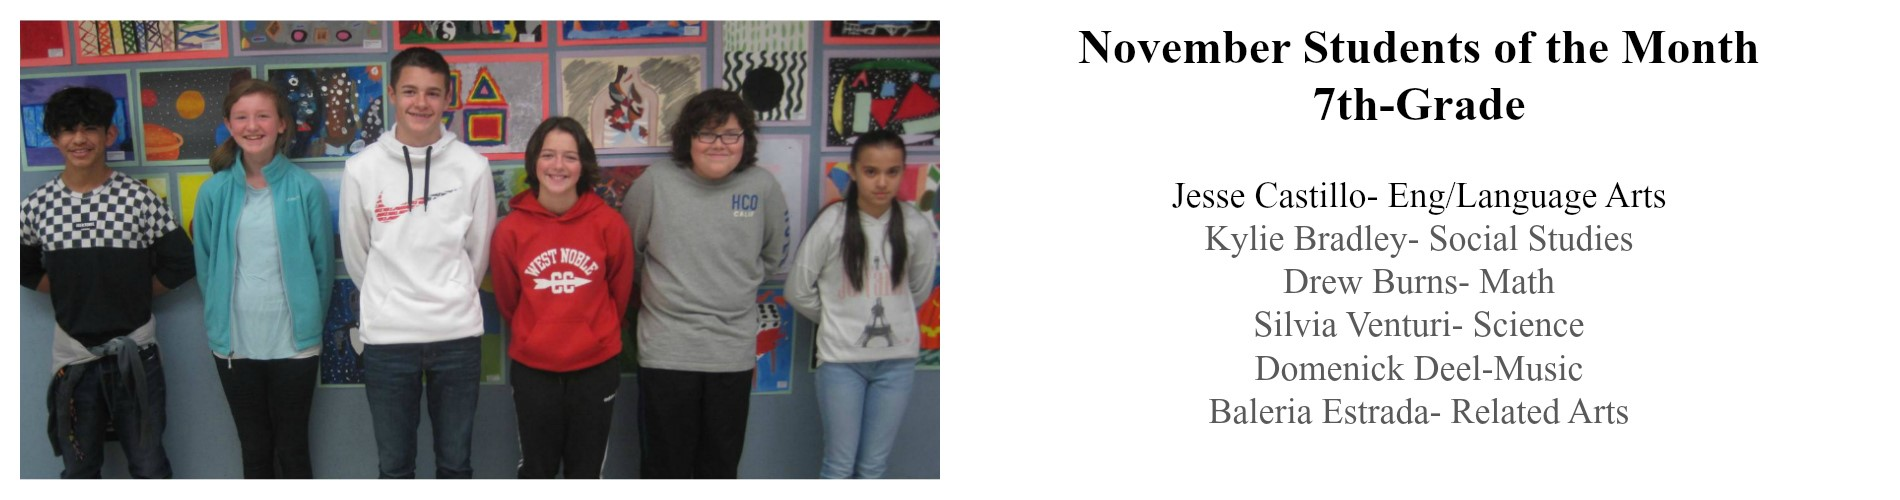 7th-Grade Students of the month.